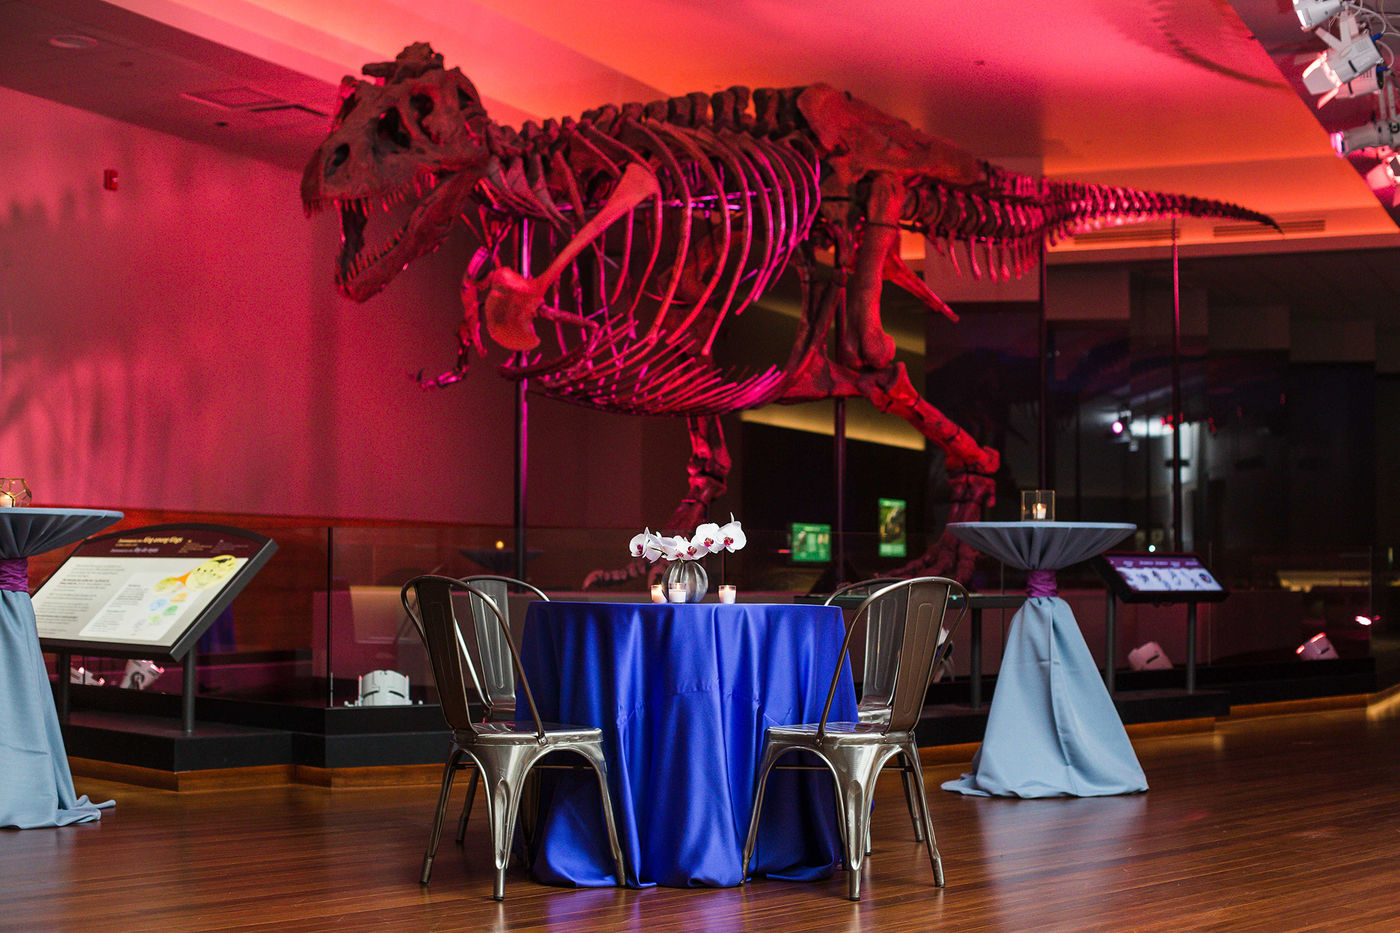 A table is set for two in SUE's gallery. The table features two chairs, a blue table cloth, and floral center piece. SUE's fossil, illuminated by red lights overhead, is visible in the background.